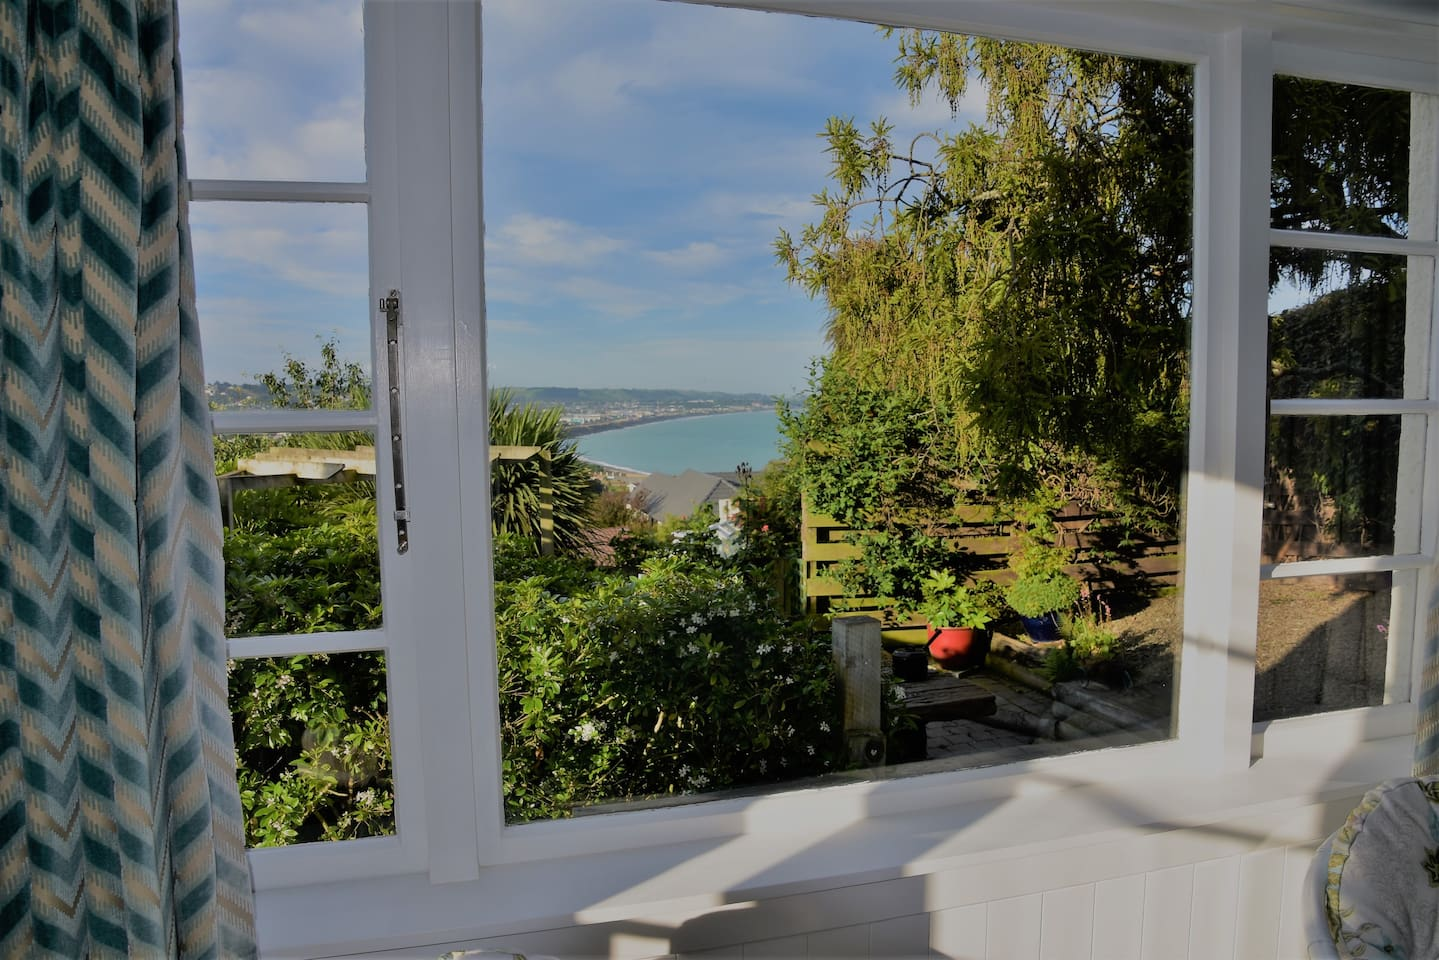 Bedroom view, sea, sun and nature. On a still night you can hear the waves breaking against the shore.